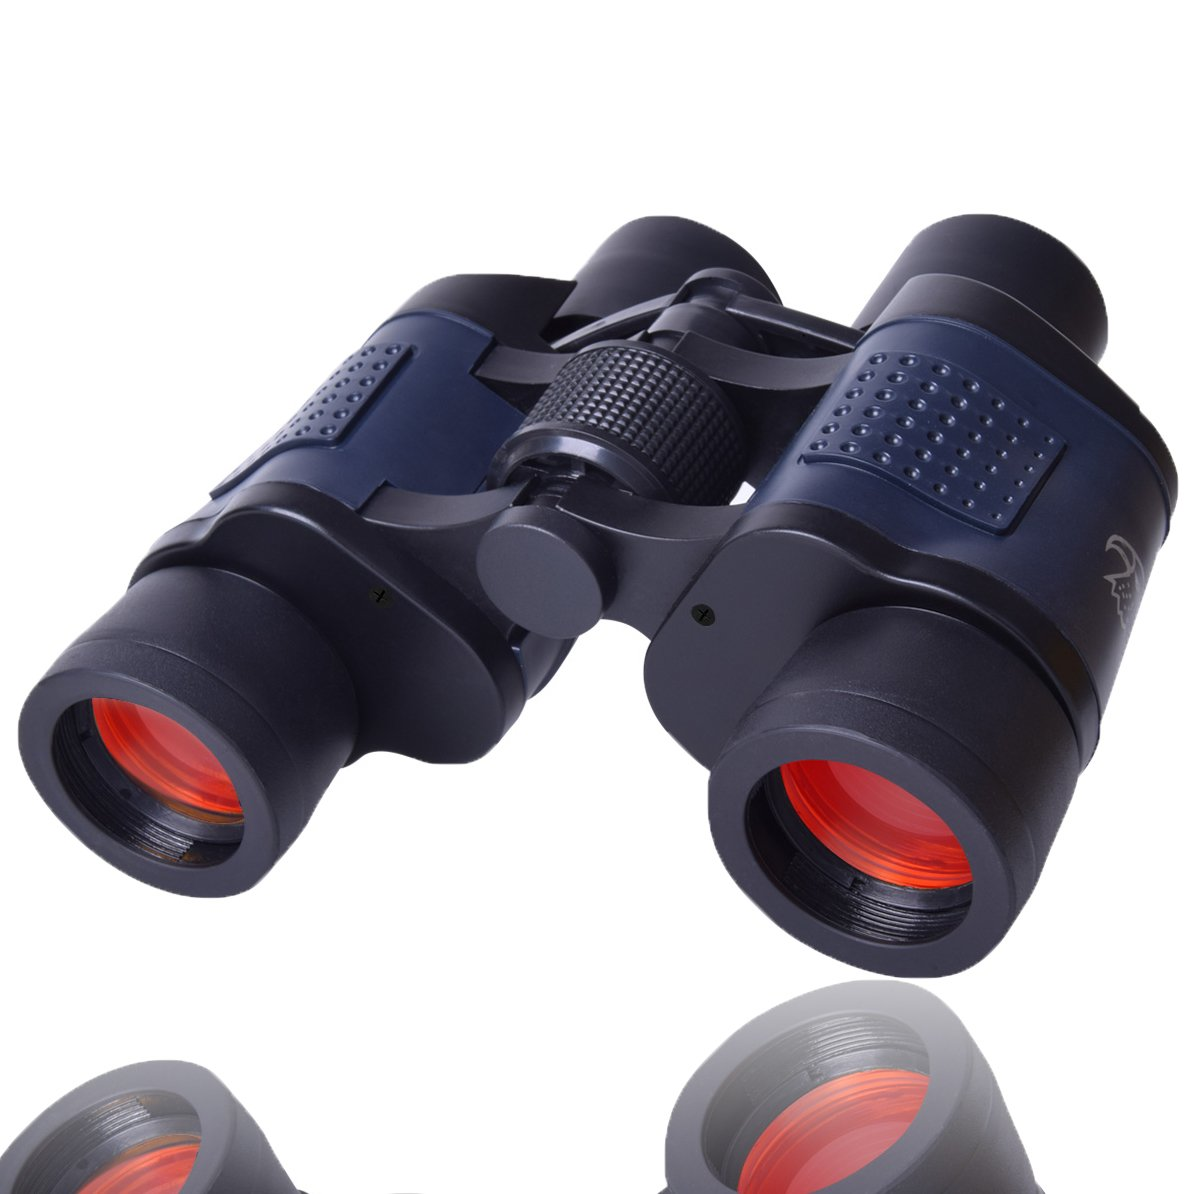 Feihe 7x35 Folding HD Quality Binoculars for Adults Bird Watching Hunting Camping Surveillance Sporting Events Traveling by Feihe